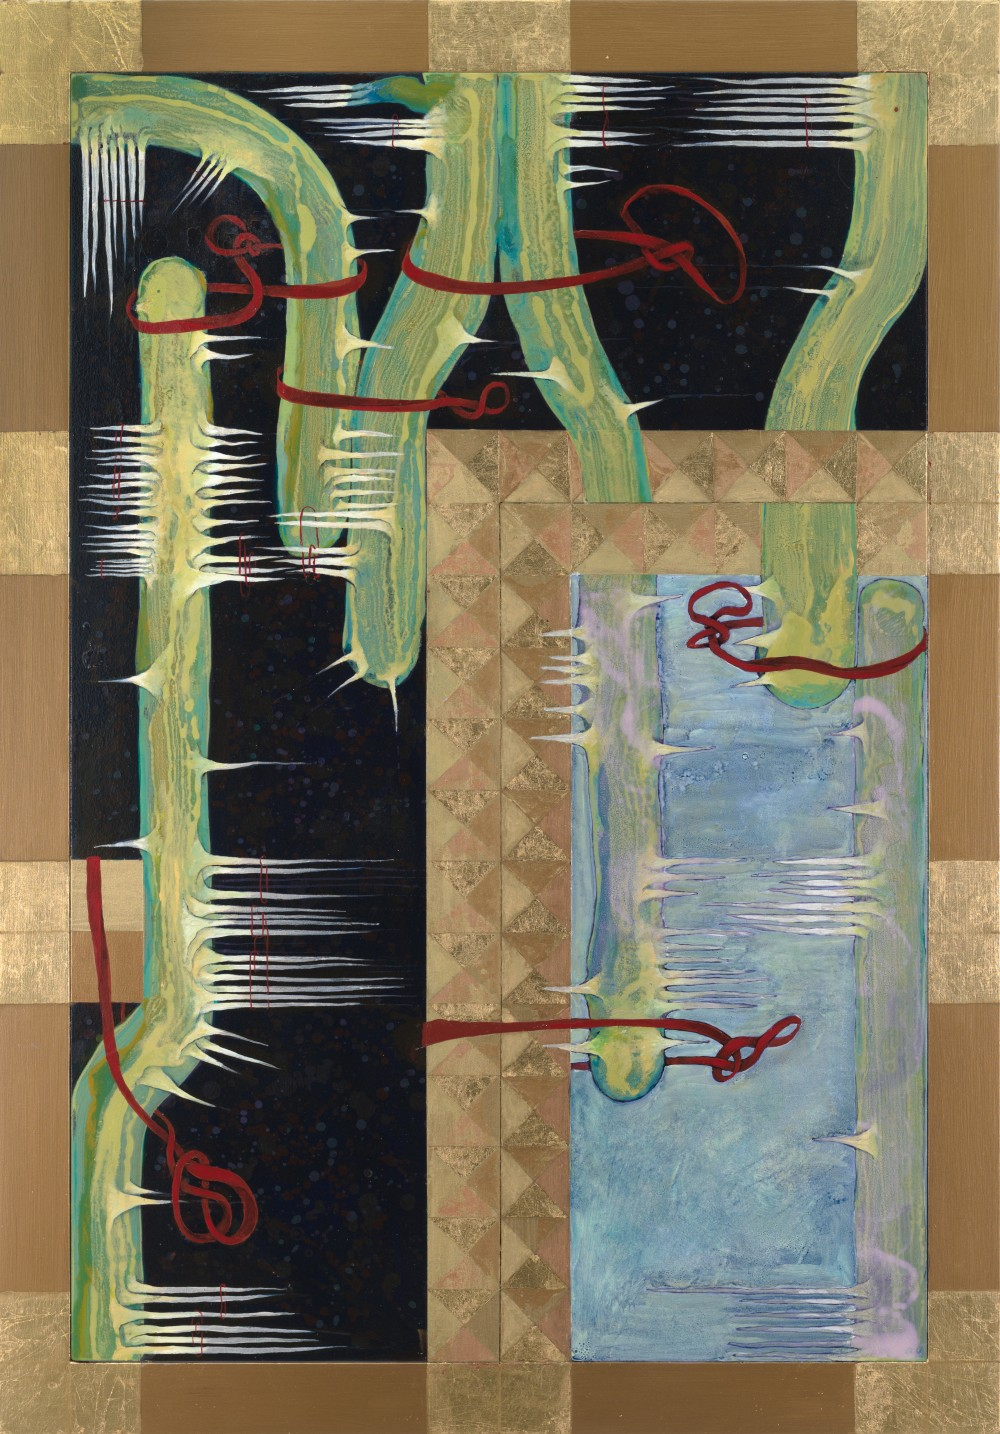 The work Julia Morison has generously contributed to *When The Dust Settles*: Julia Morison *Omnium Gatherum 59* 2018 acrylic and gold leaf on PVC board and timber frame 1000 x 700 x 40 mm Courtesy of the artist and Sumer, Tauranga